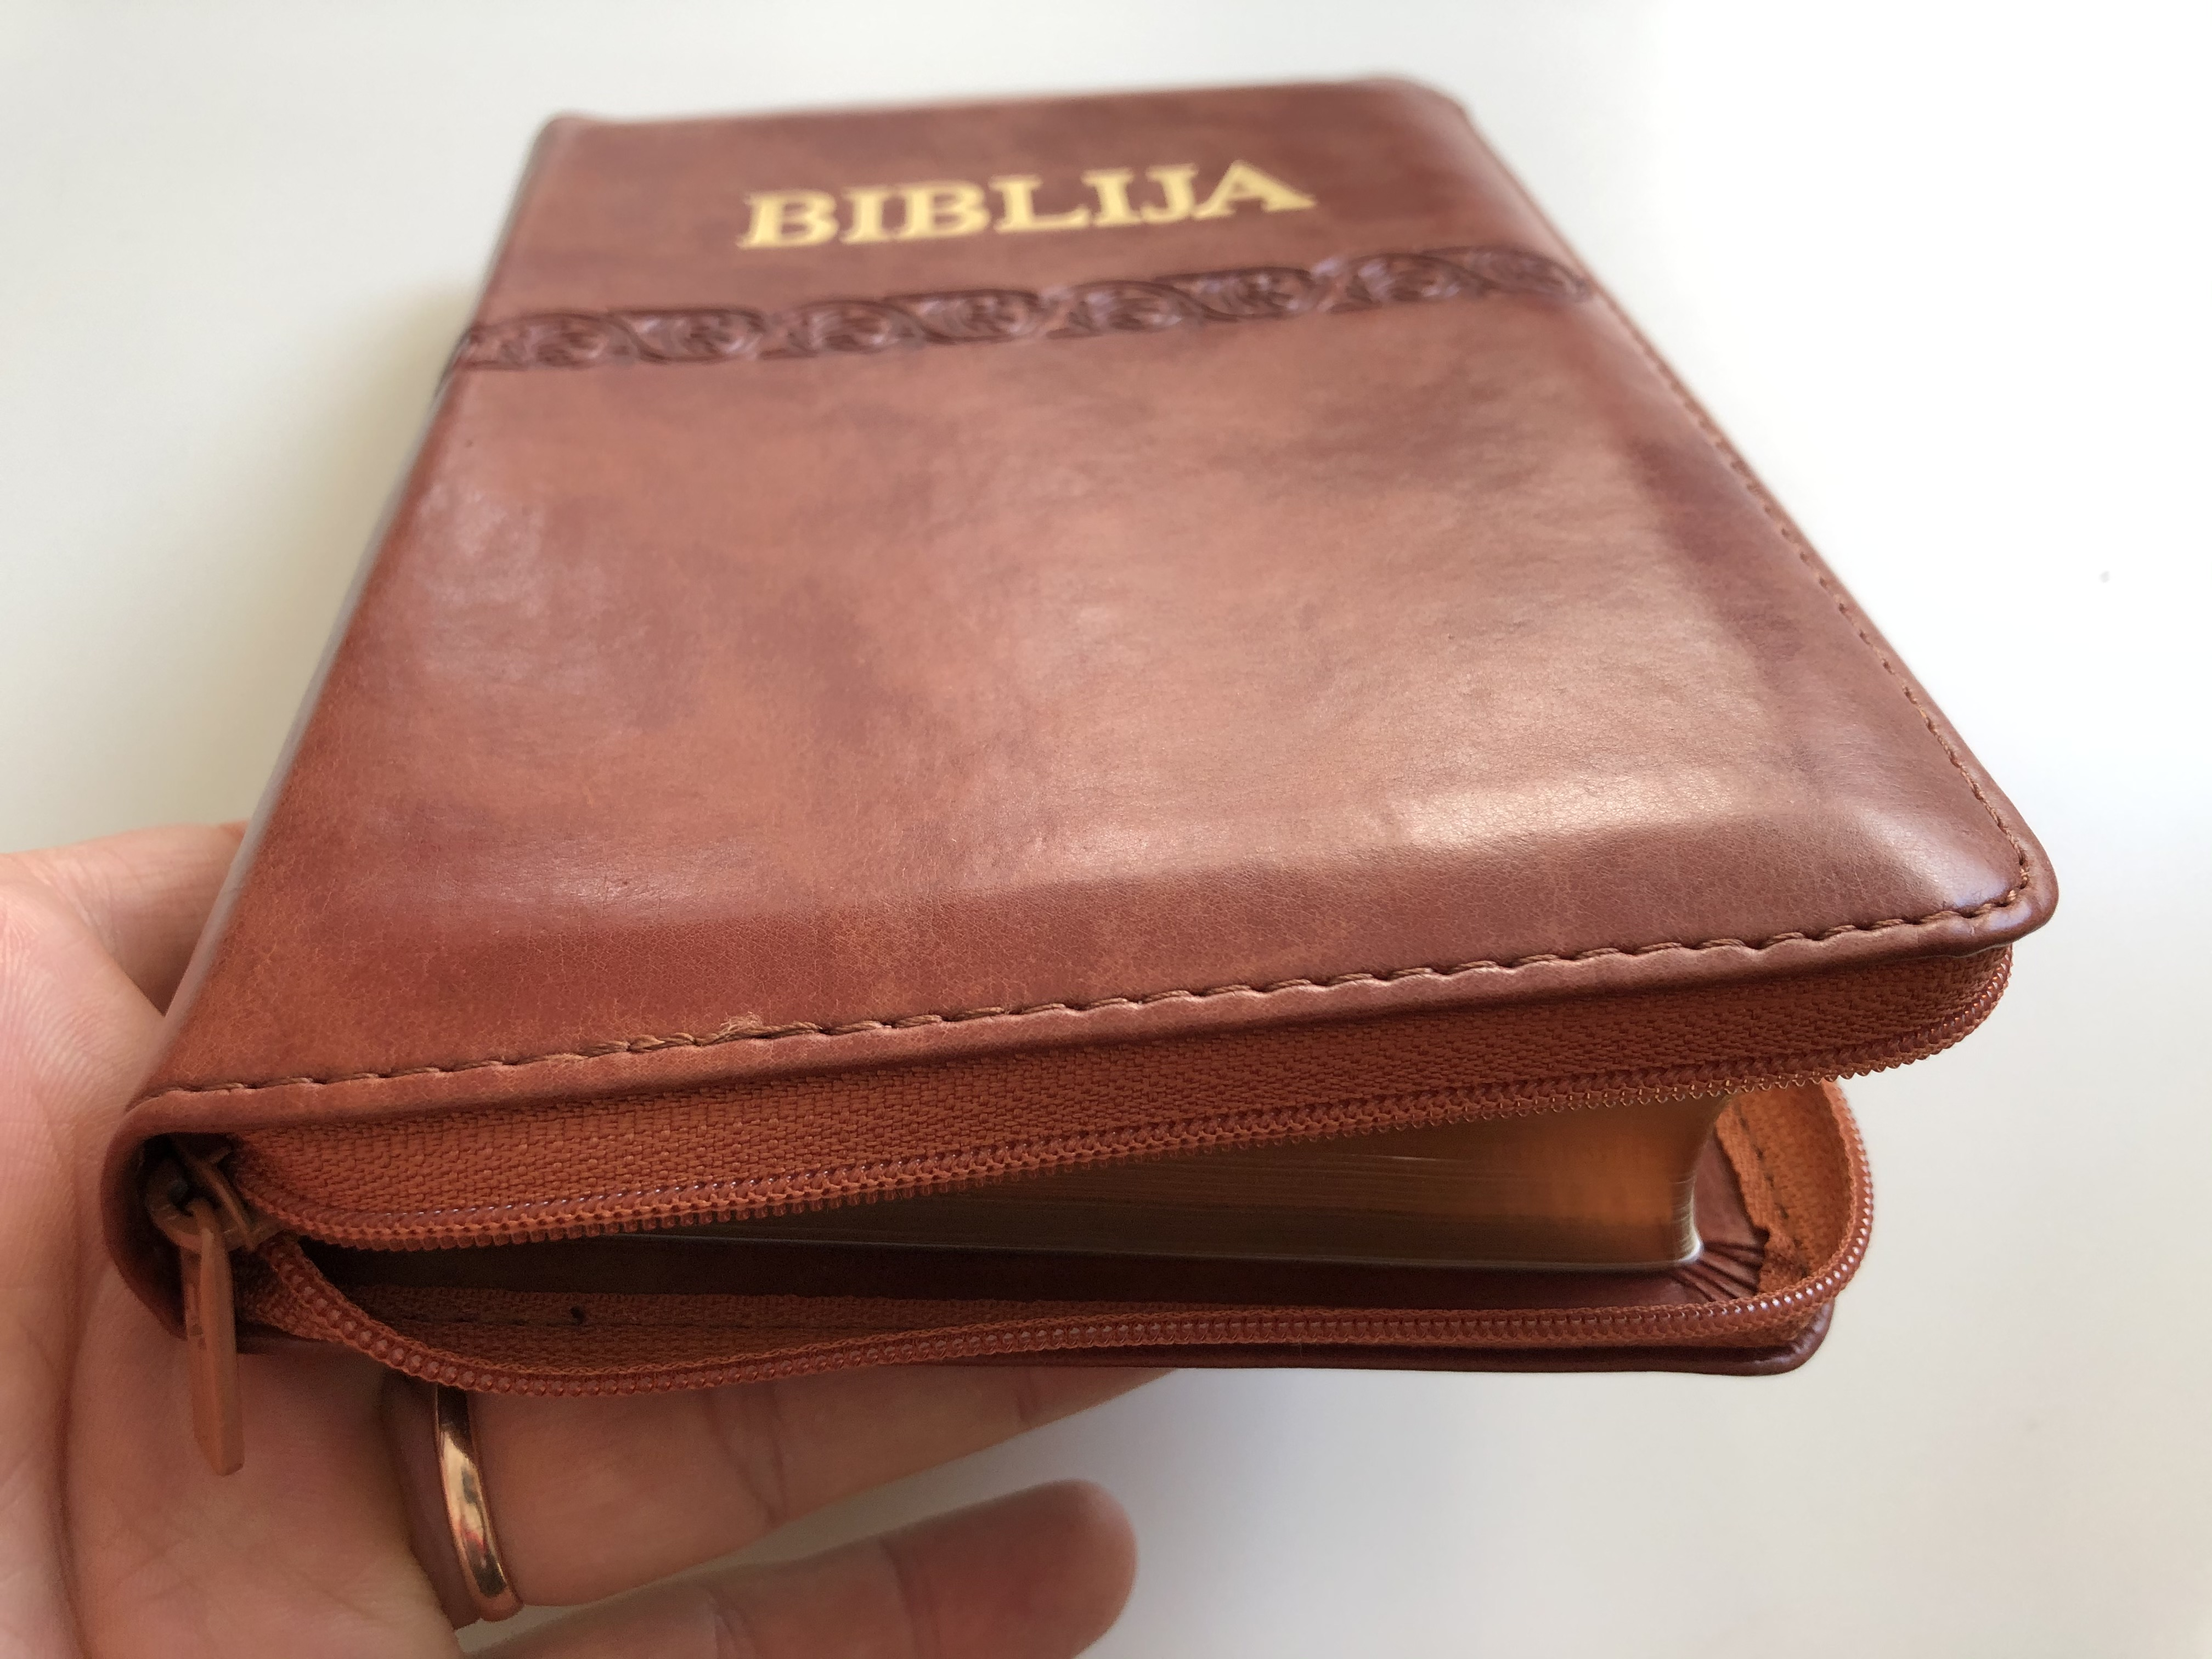 biblija-holy-bible-in-croatian-language-brown-leather-bound-with-zipper-small-size-17.jpg